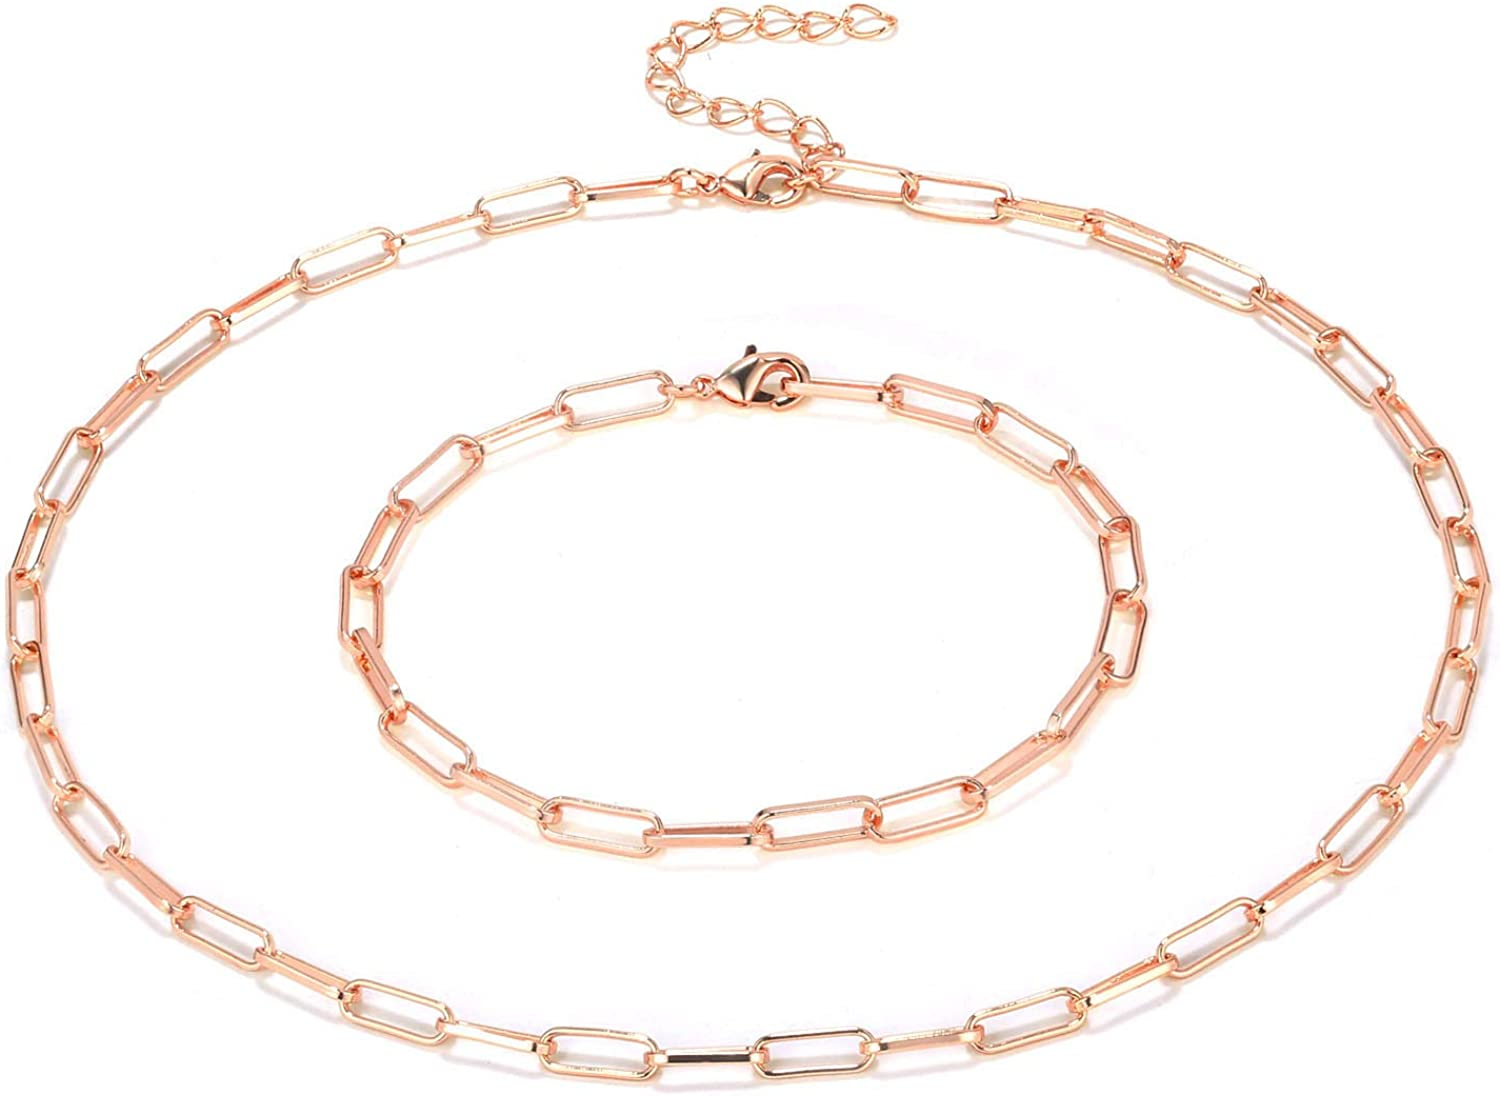 Konpicca 14K Gold Plated Dainty Paperclip Link Chain Necklace Simple Punk Charm Choker for Women Girls